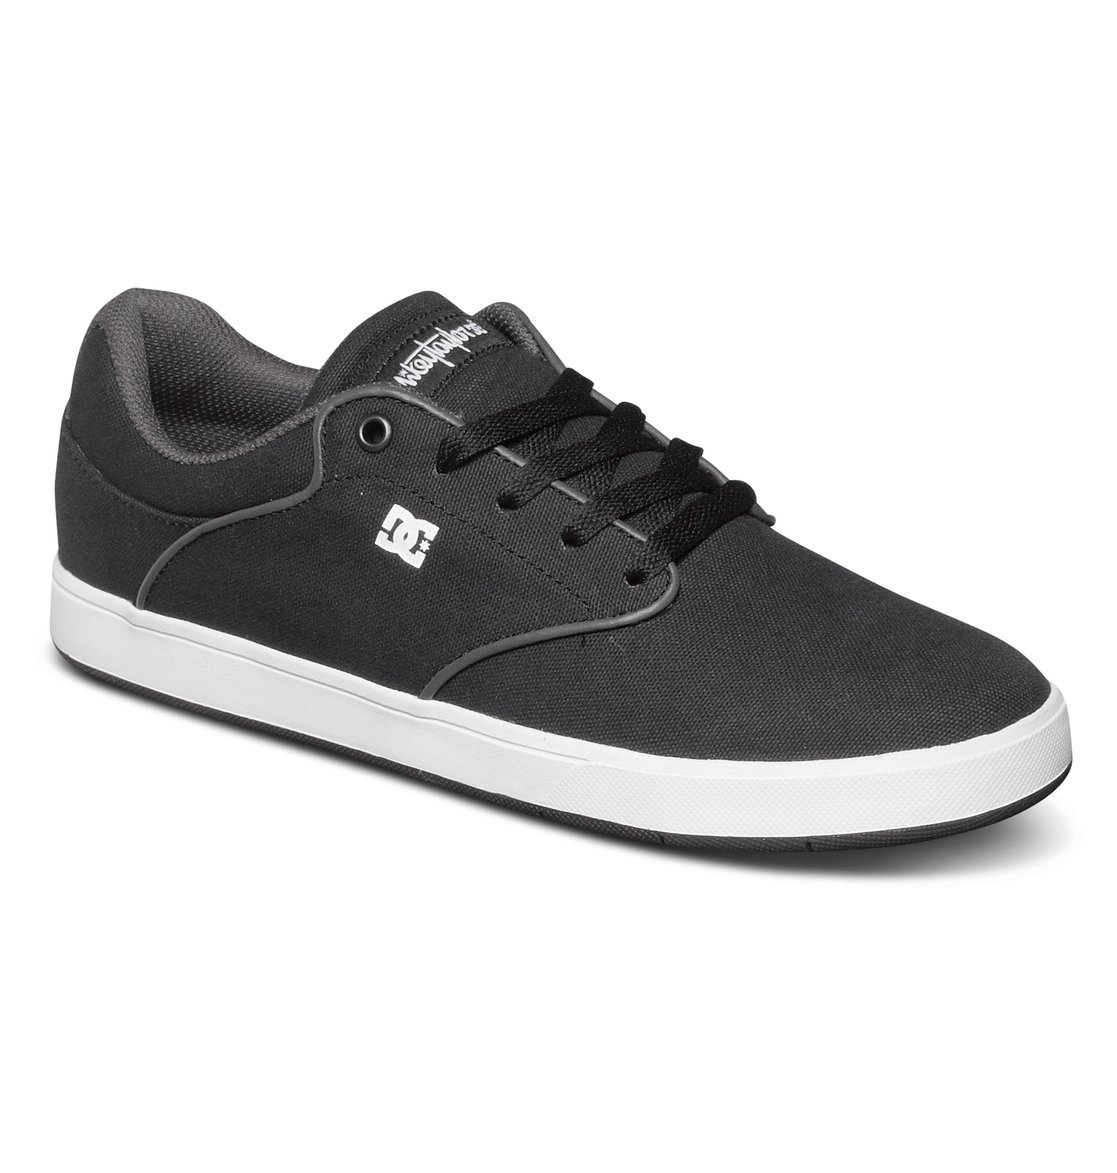 Mikey Taylor Shoe Taylor s tx Low Top Shoes